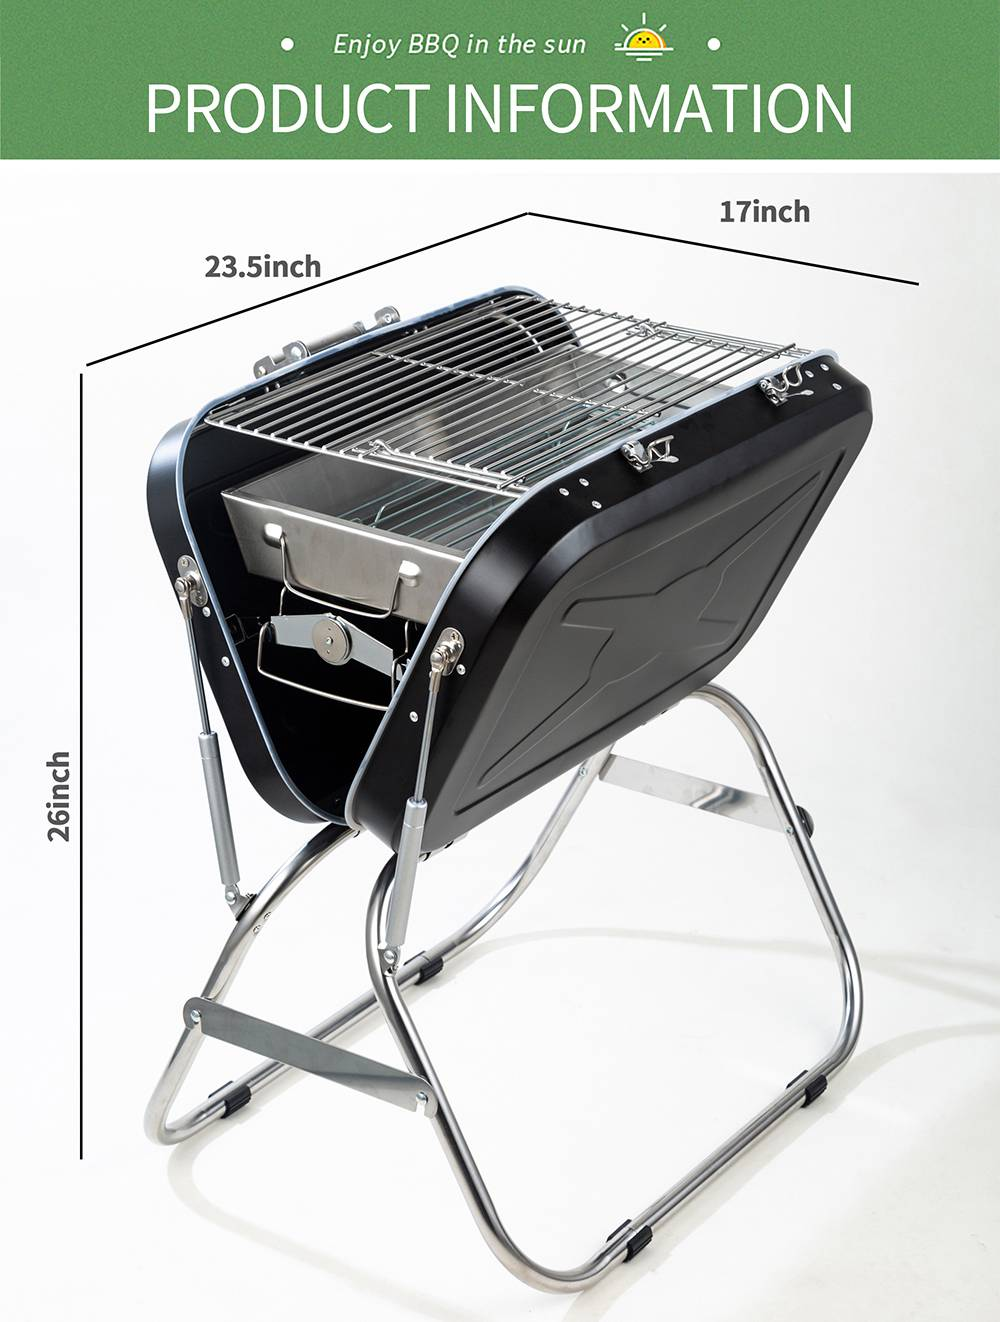 Portable Foldable Charcoal Grill Stainless Steel Material For Outdoor Camping Terrace Picnic - Black